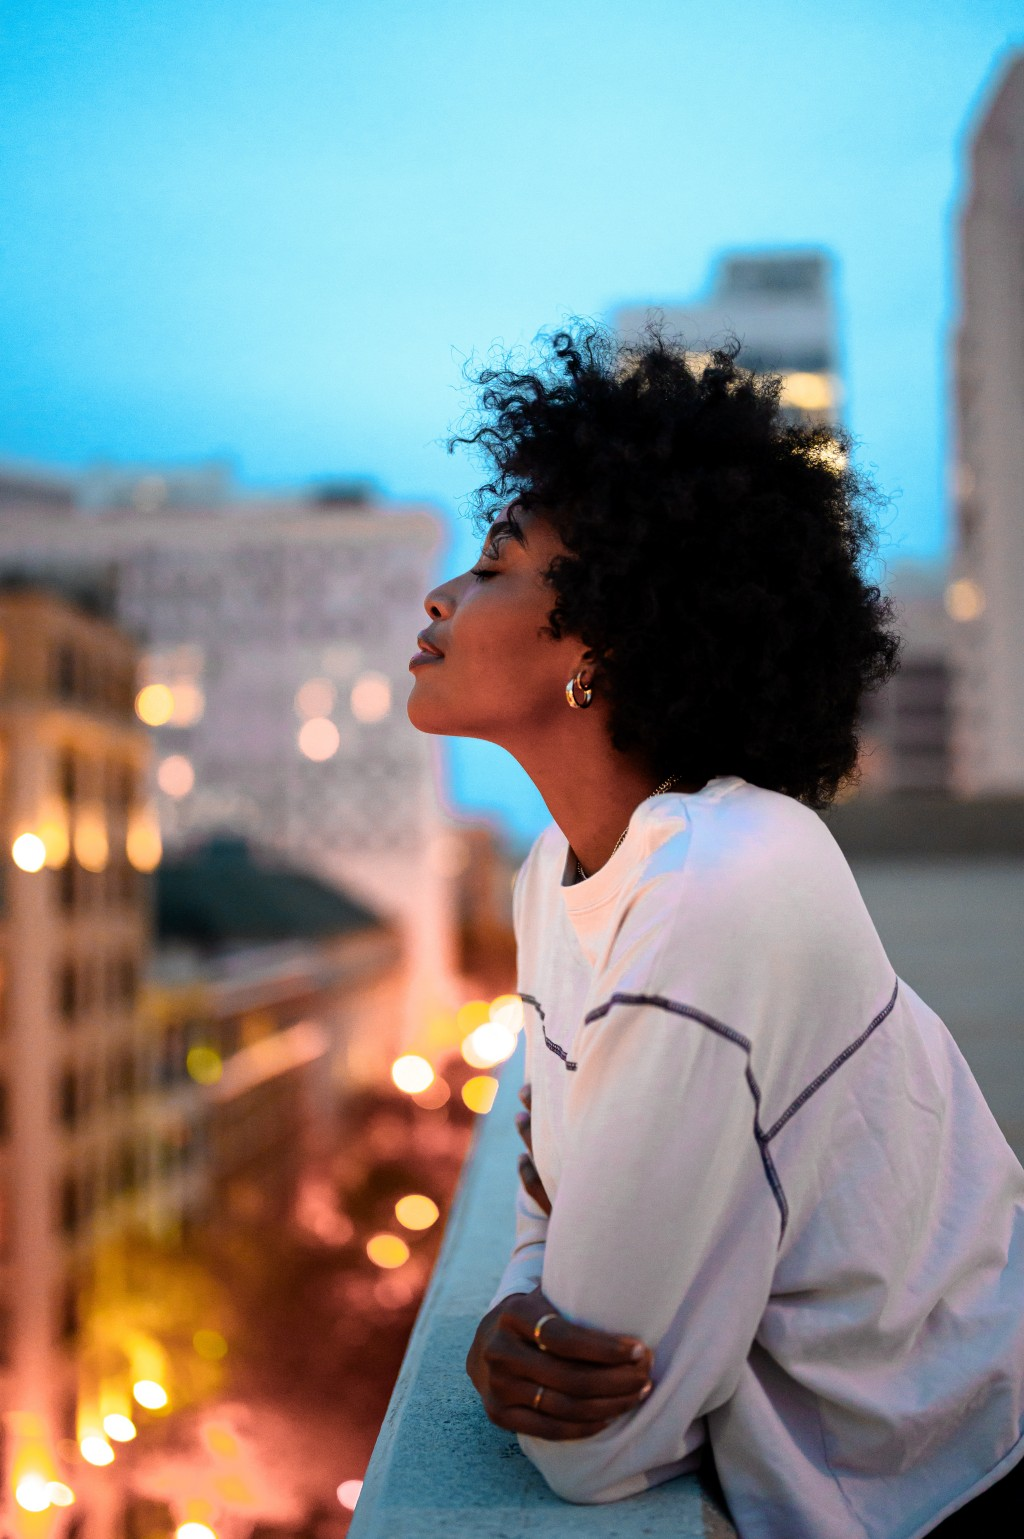 An African American woman stands on a city balcony at dusk